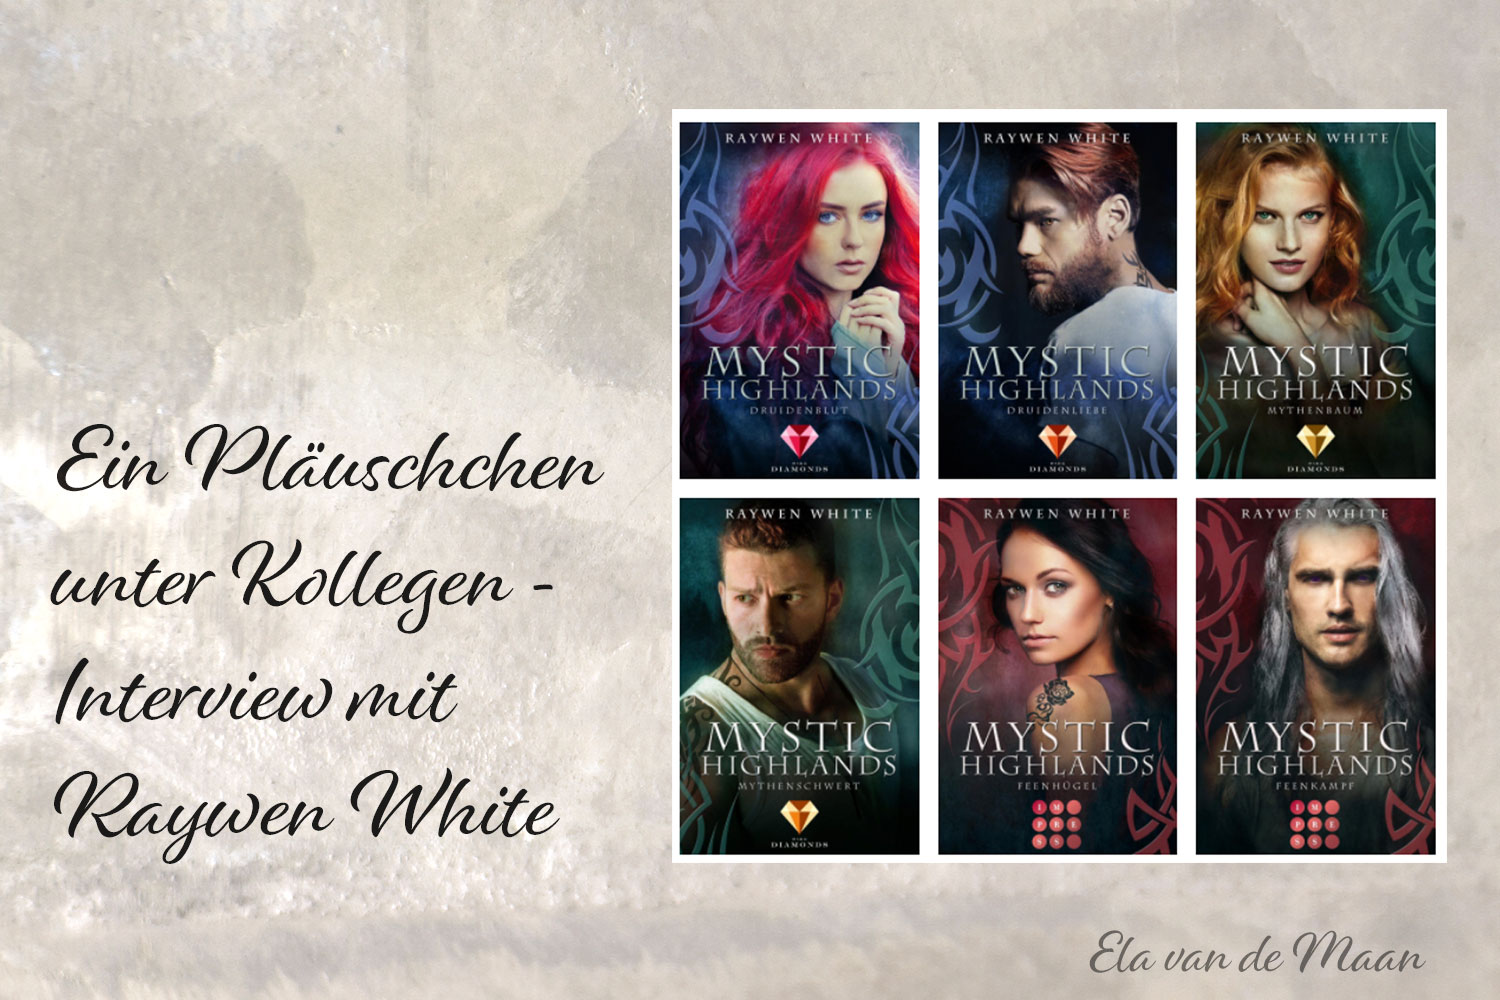 interview mit raywen white